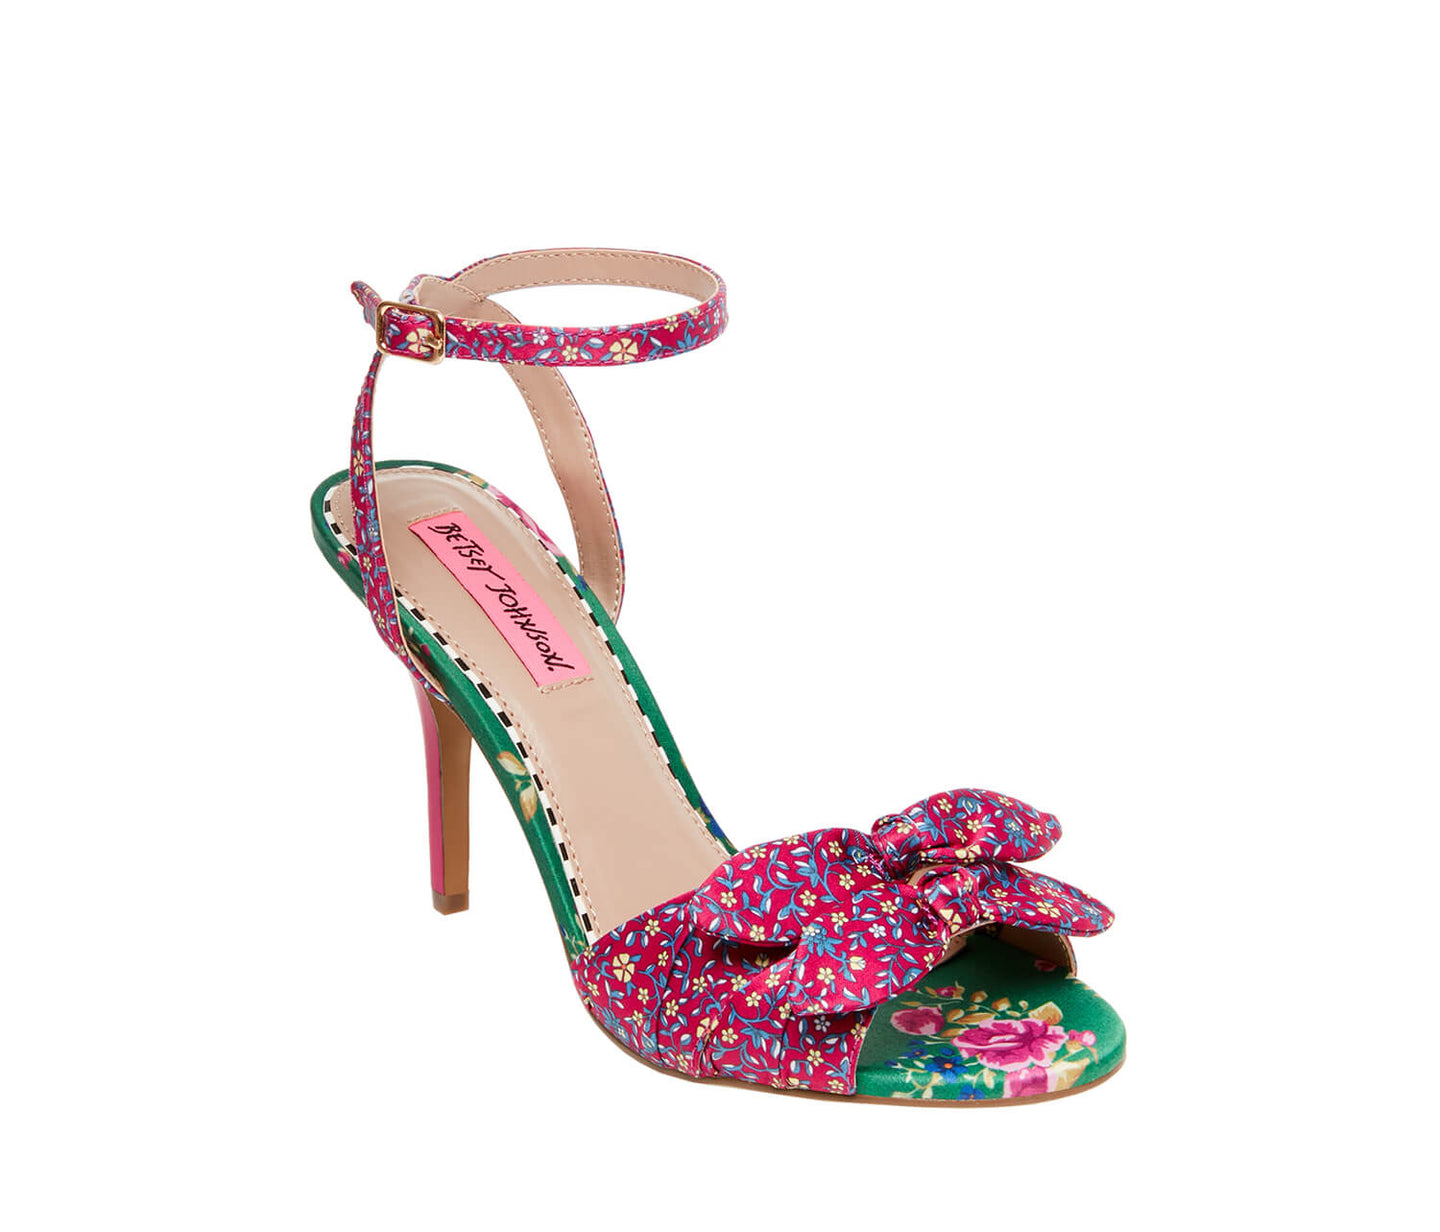 SWEETIE MAGENTA - SHOES - Betsey Johnson